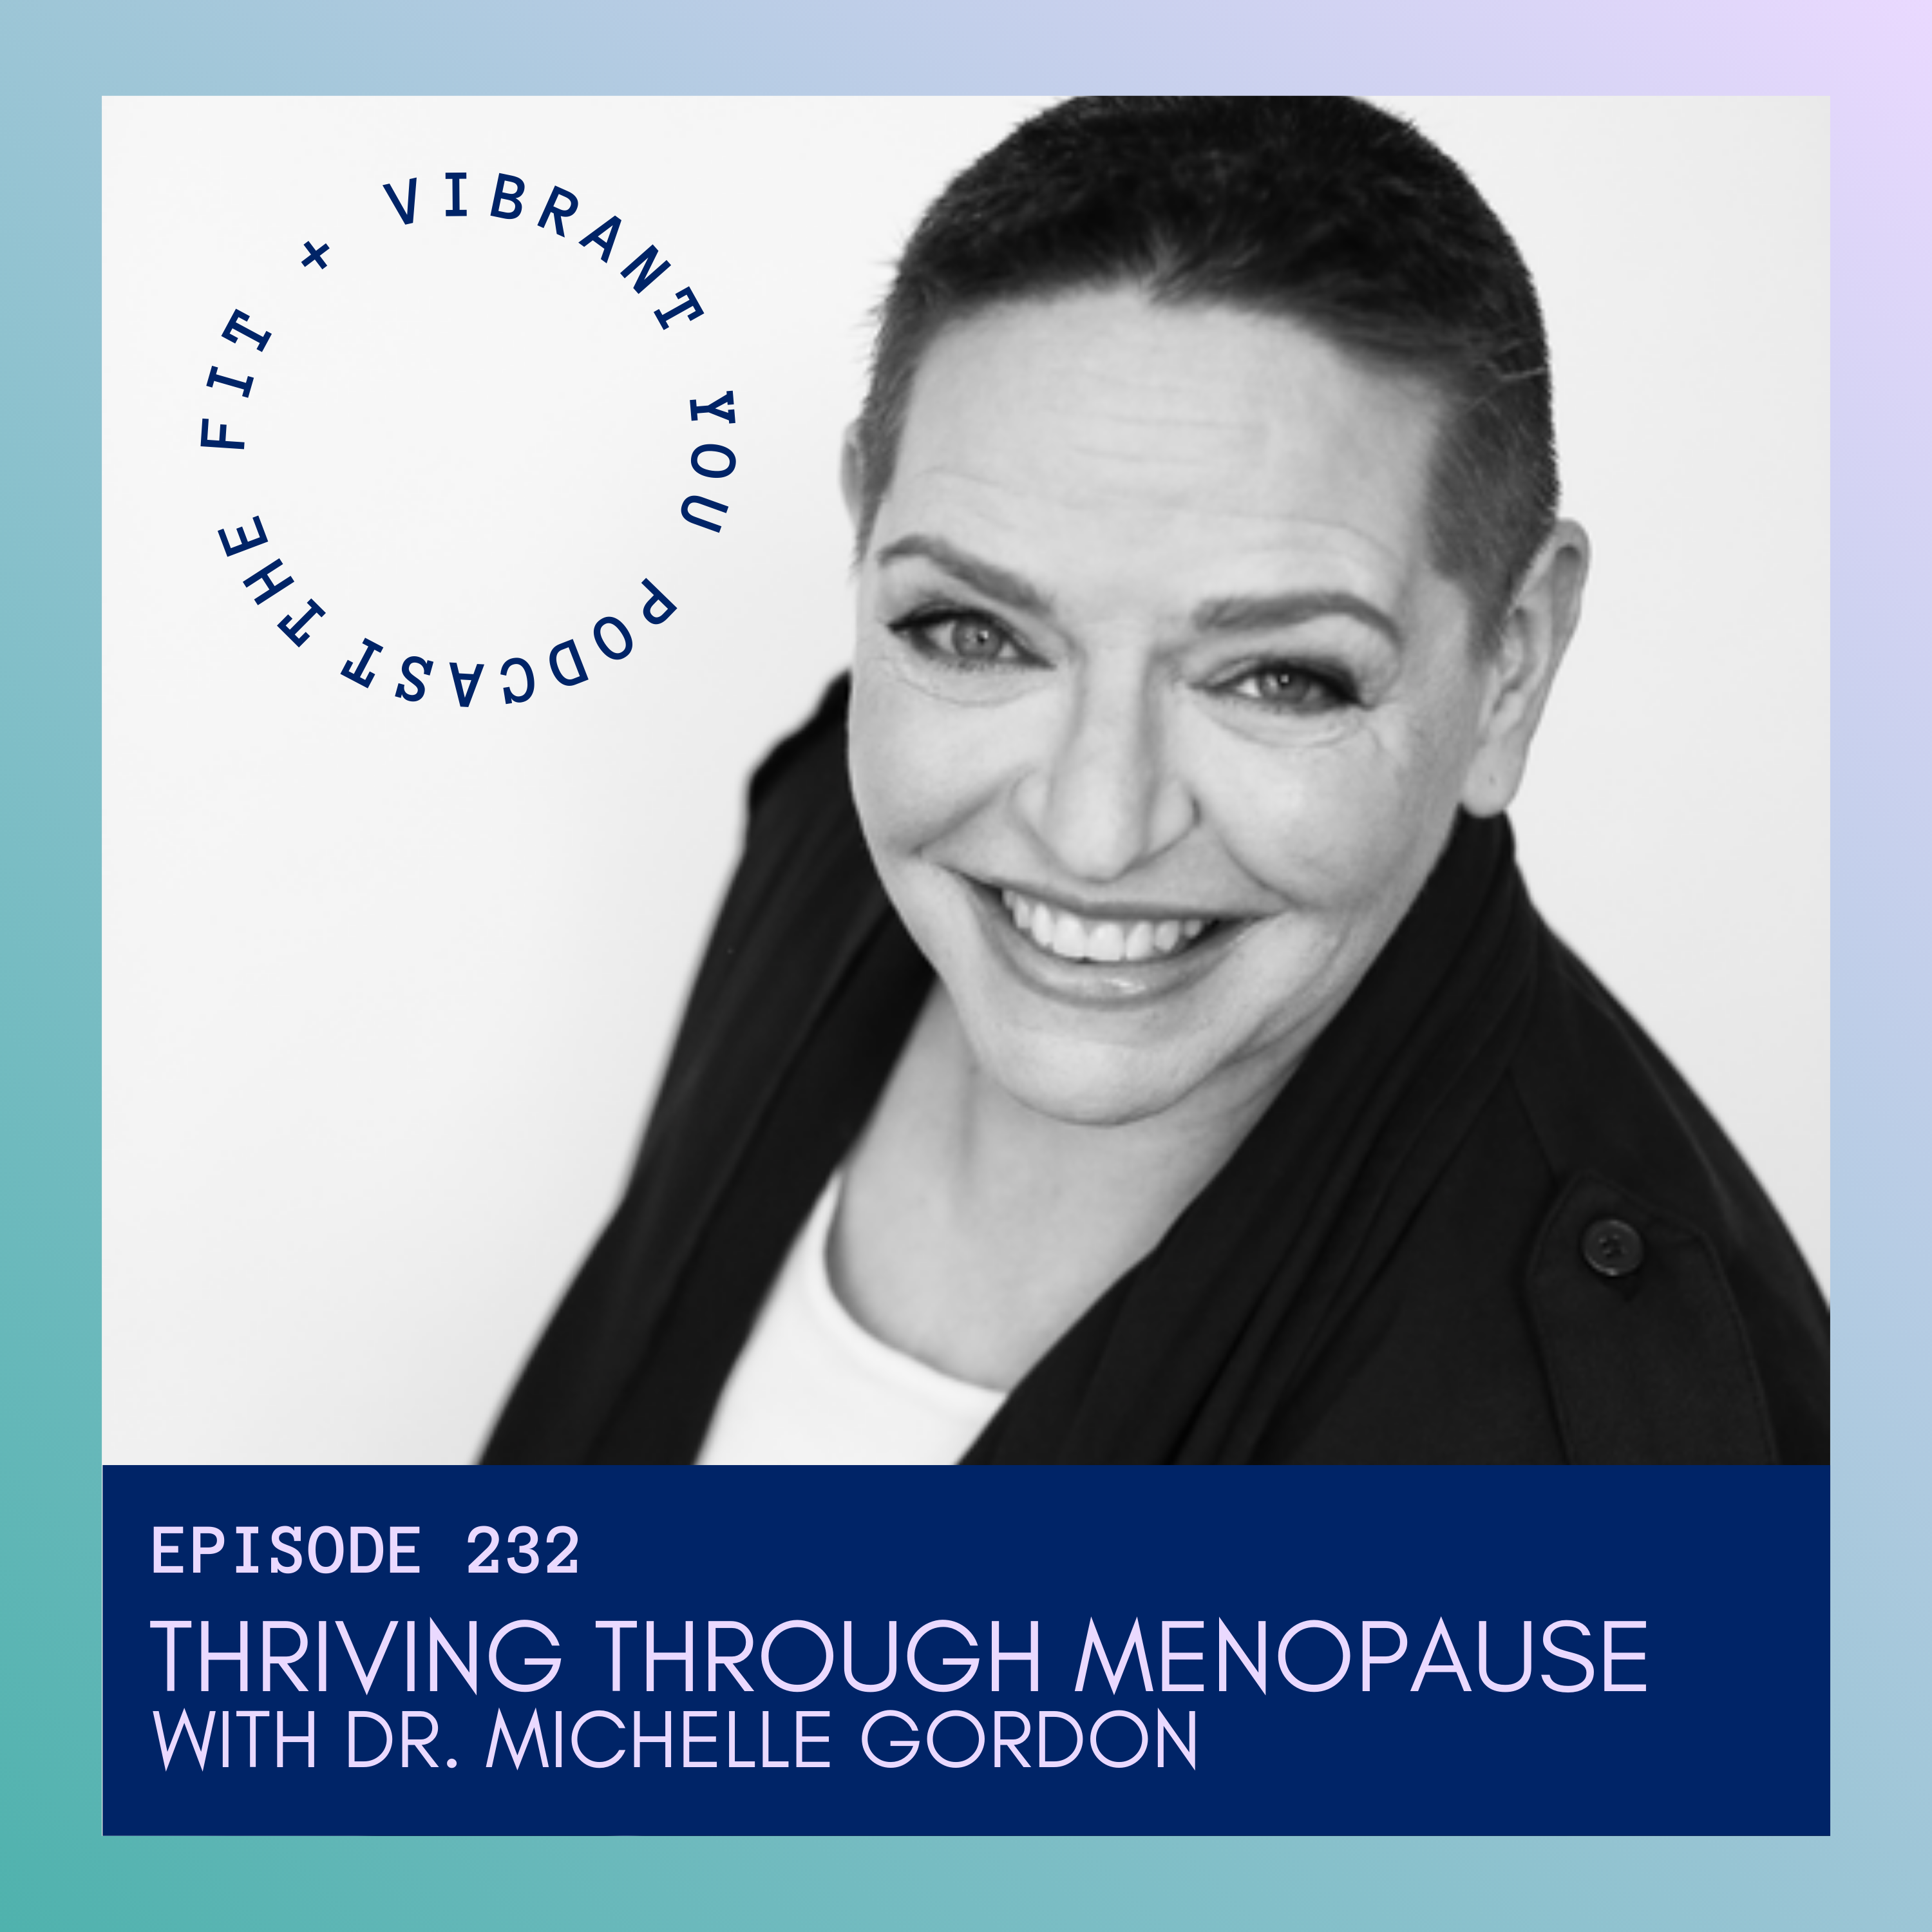 Thriving Through Menopause with Dr. Michelle Gordon: FVY232